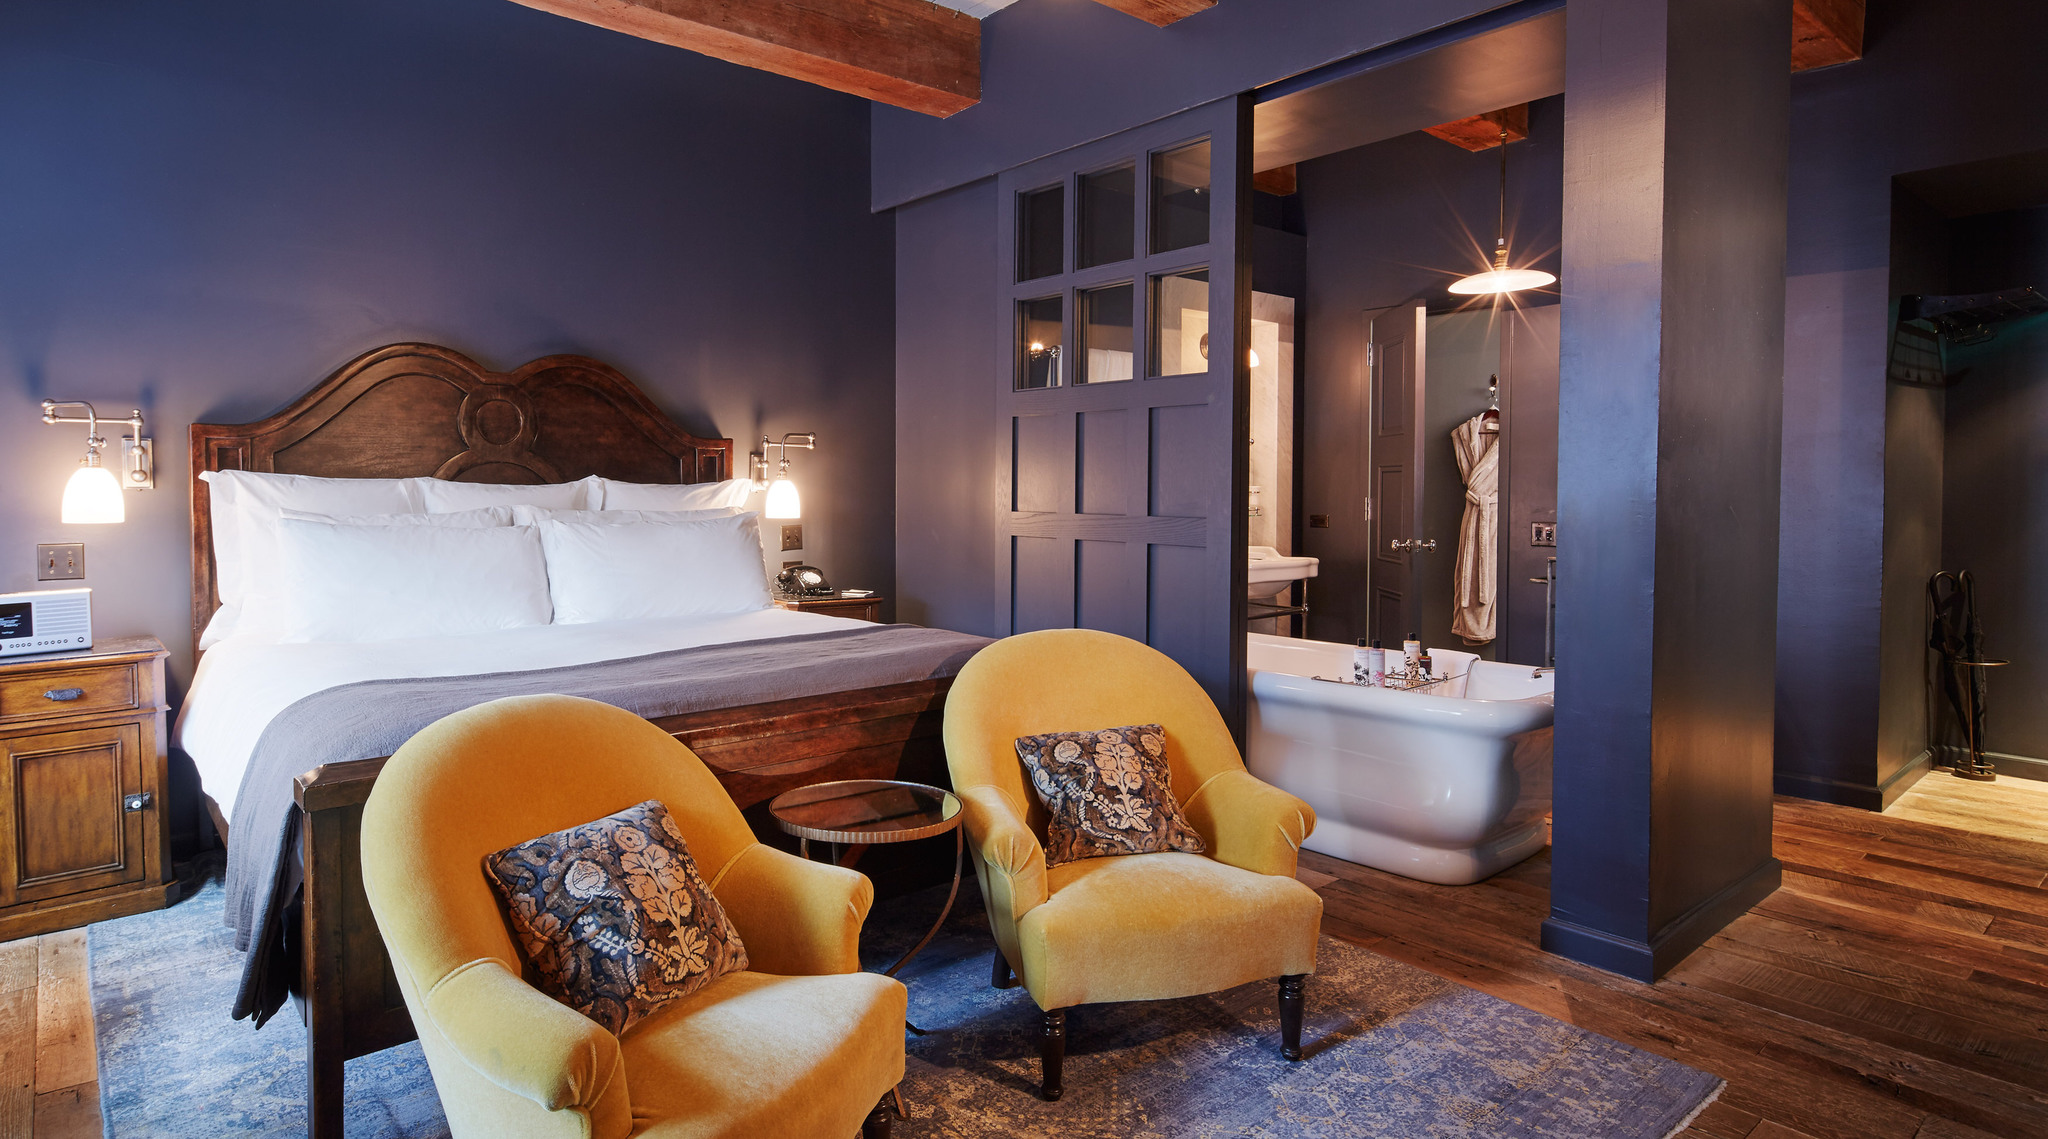 Soho house one of the best boutique hotels in for Best boutique hotels nyc 2015